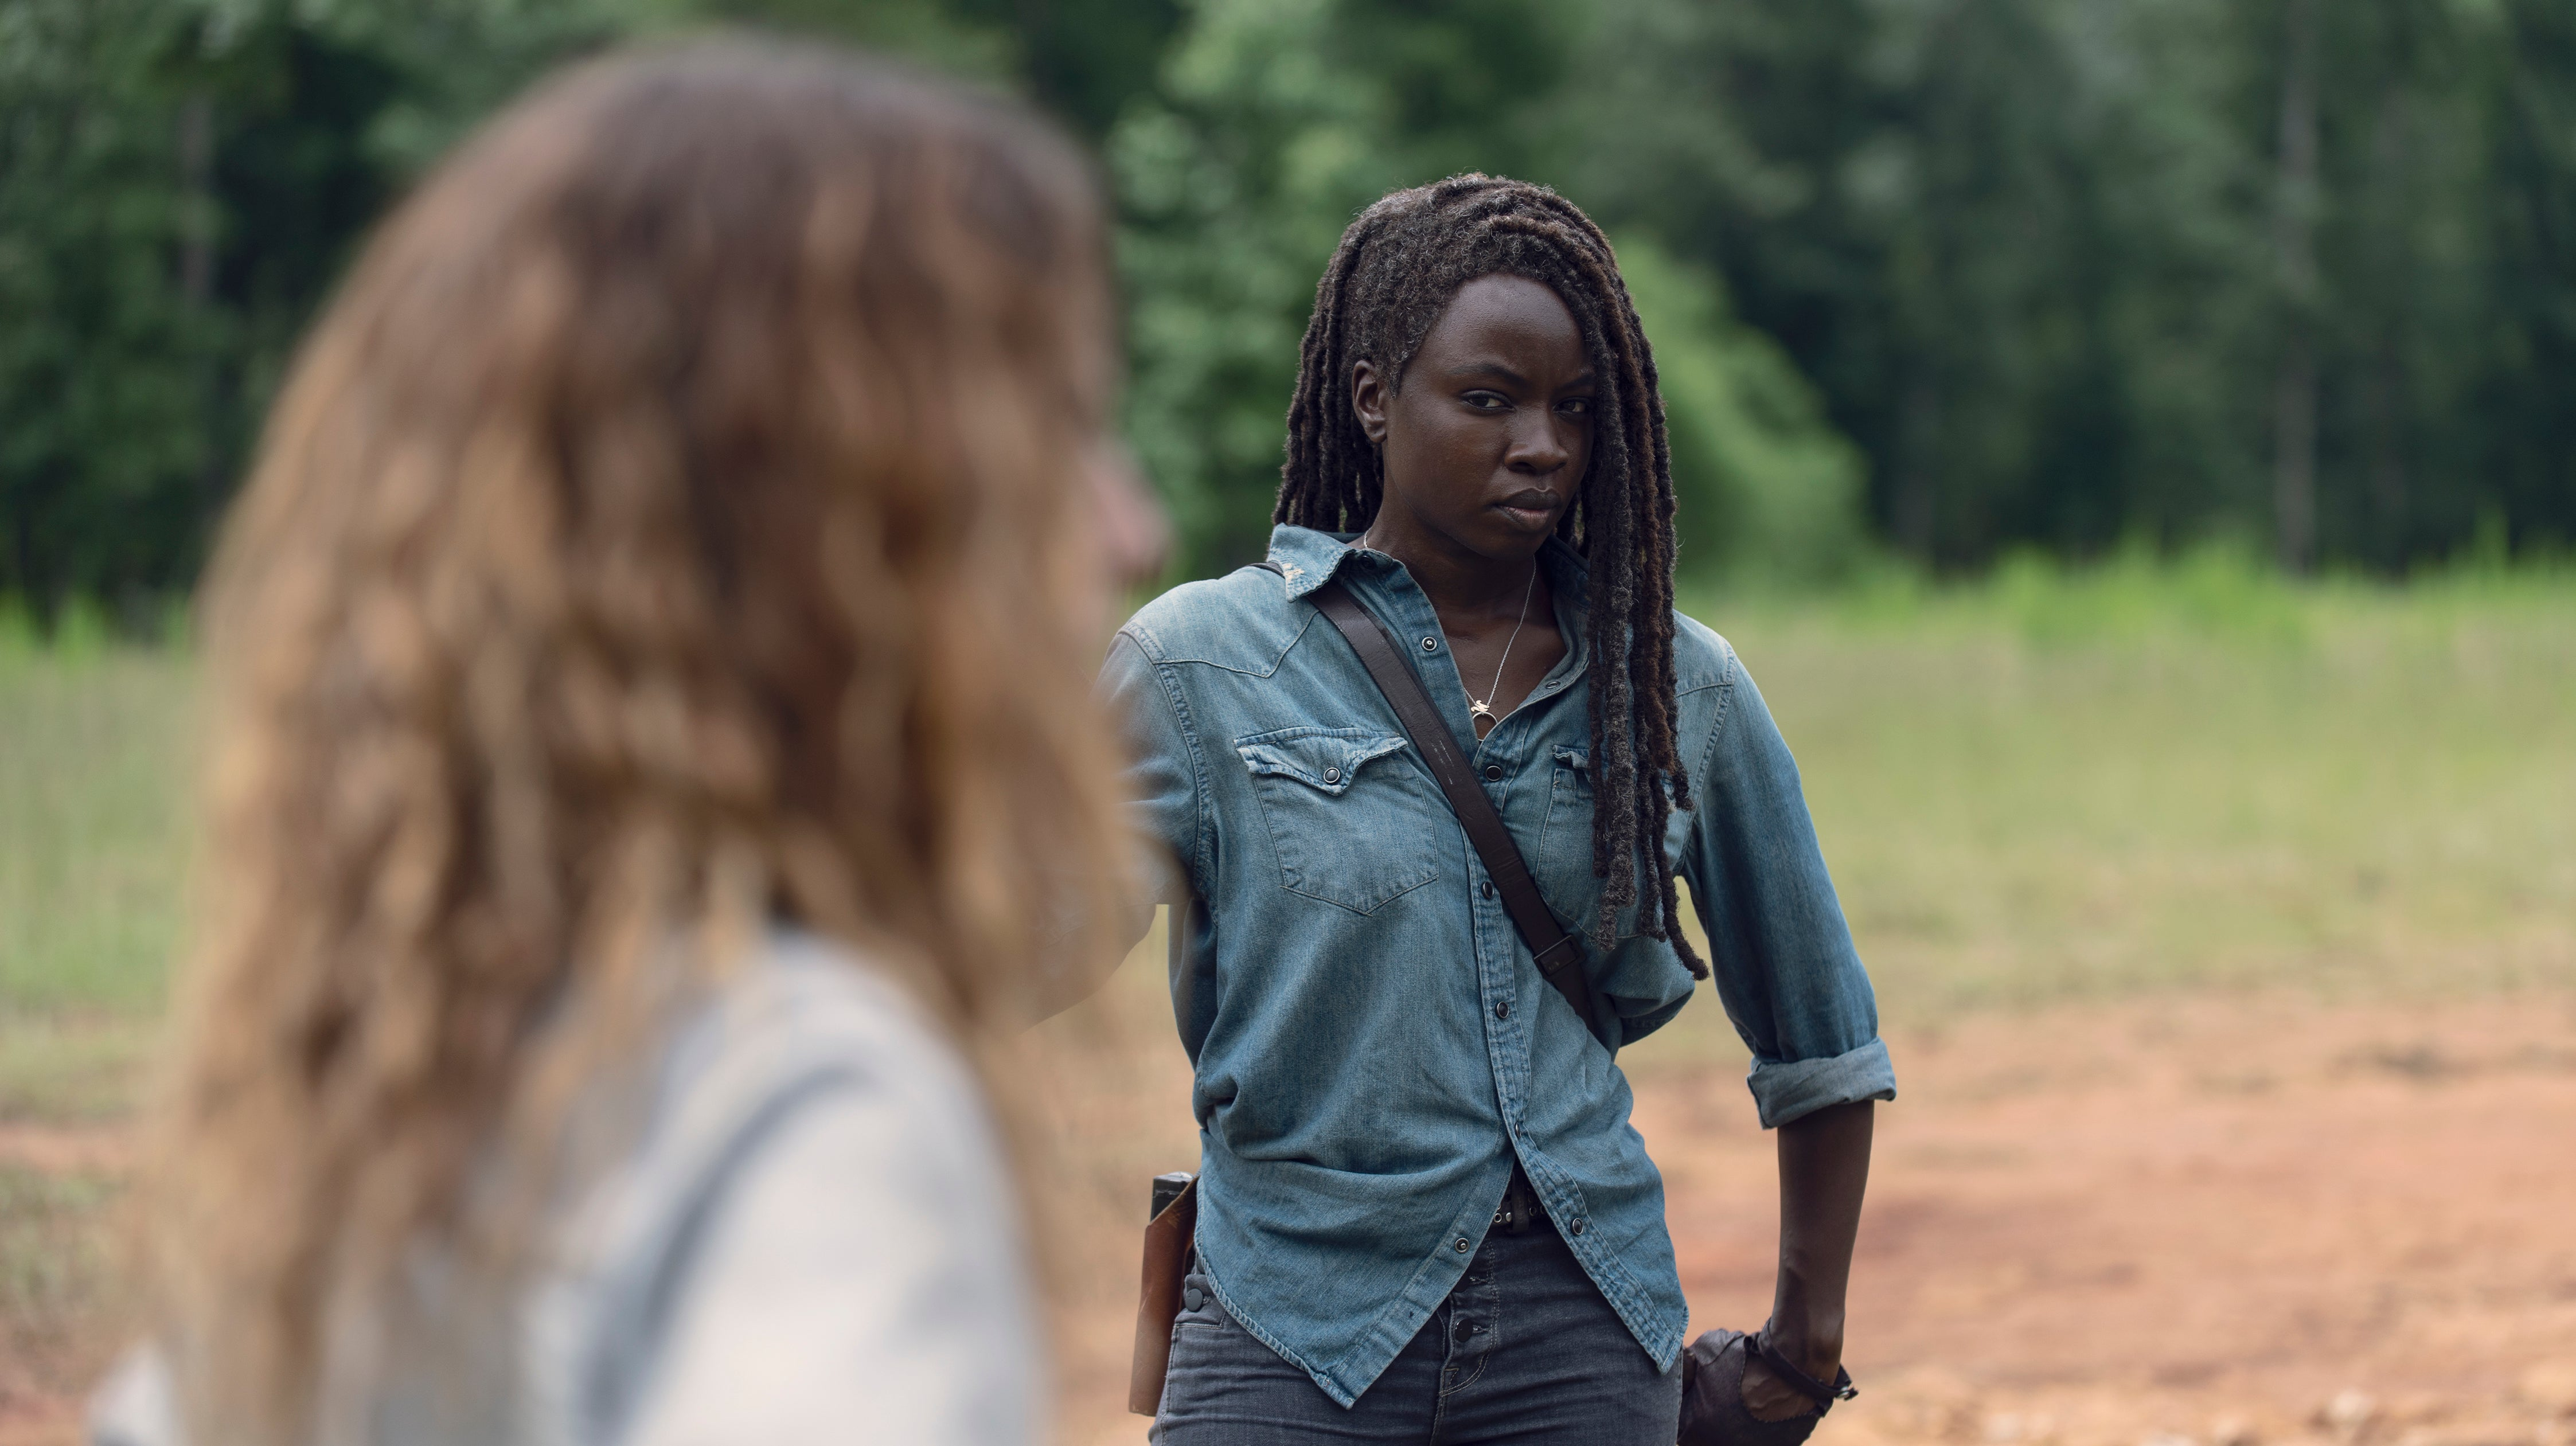 amc io9 the-walking-dead tv-recap walking-dead-recap zombies